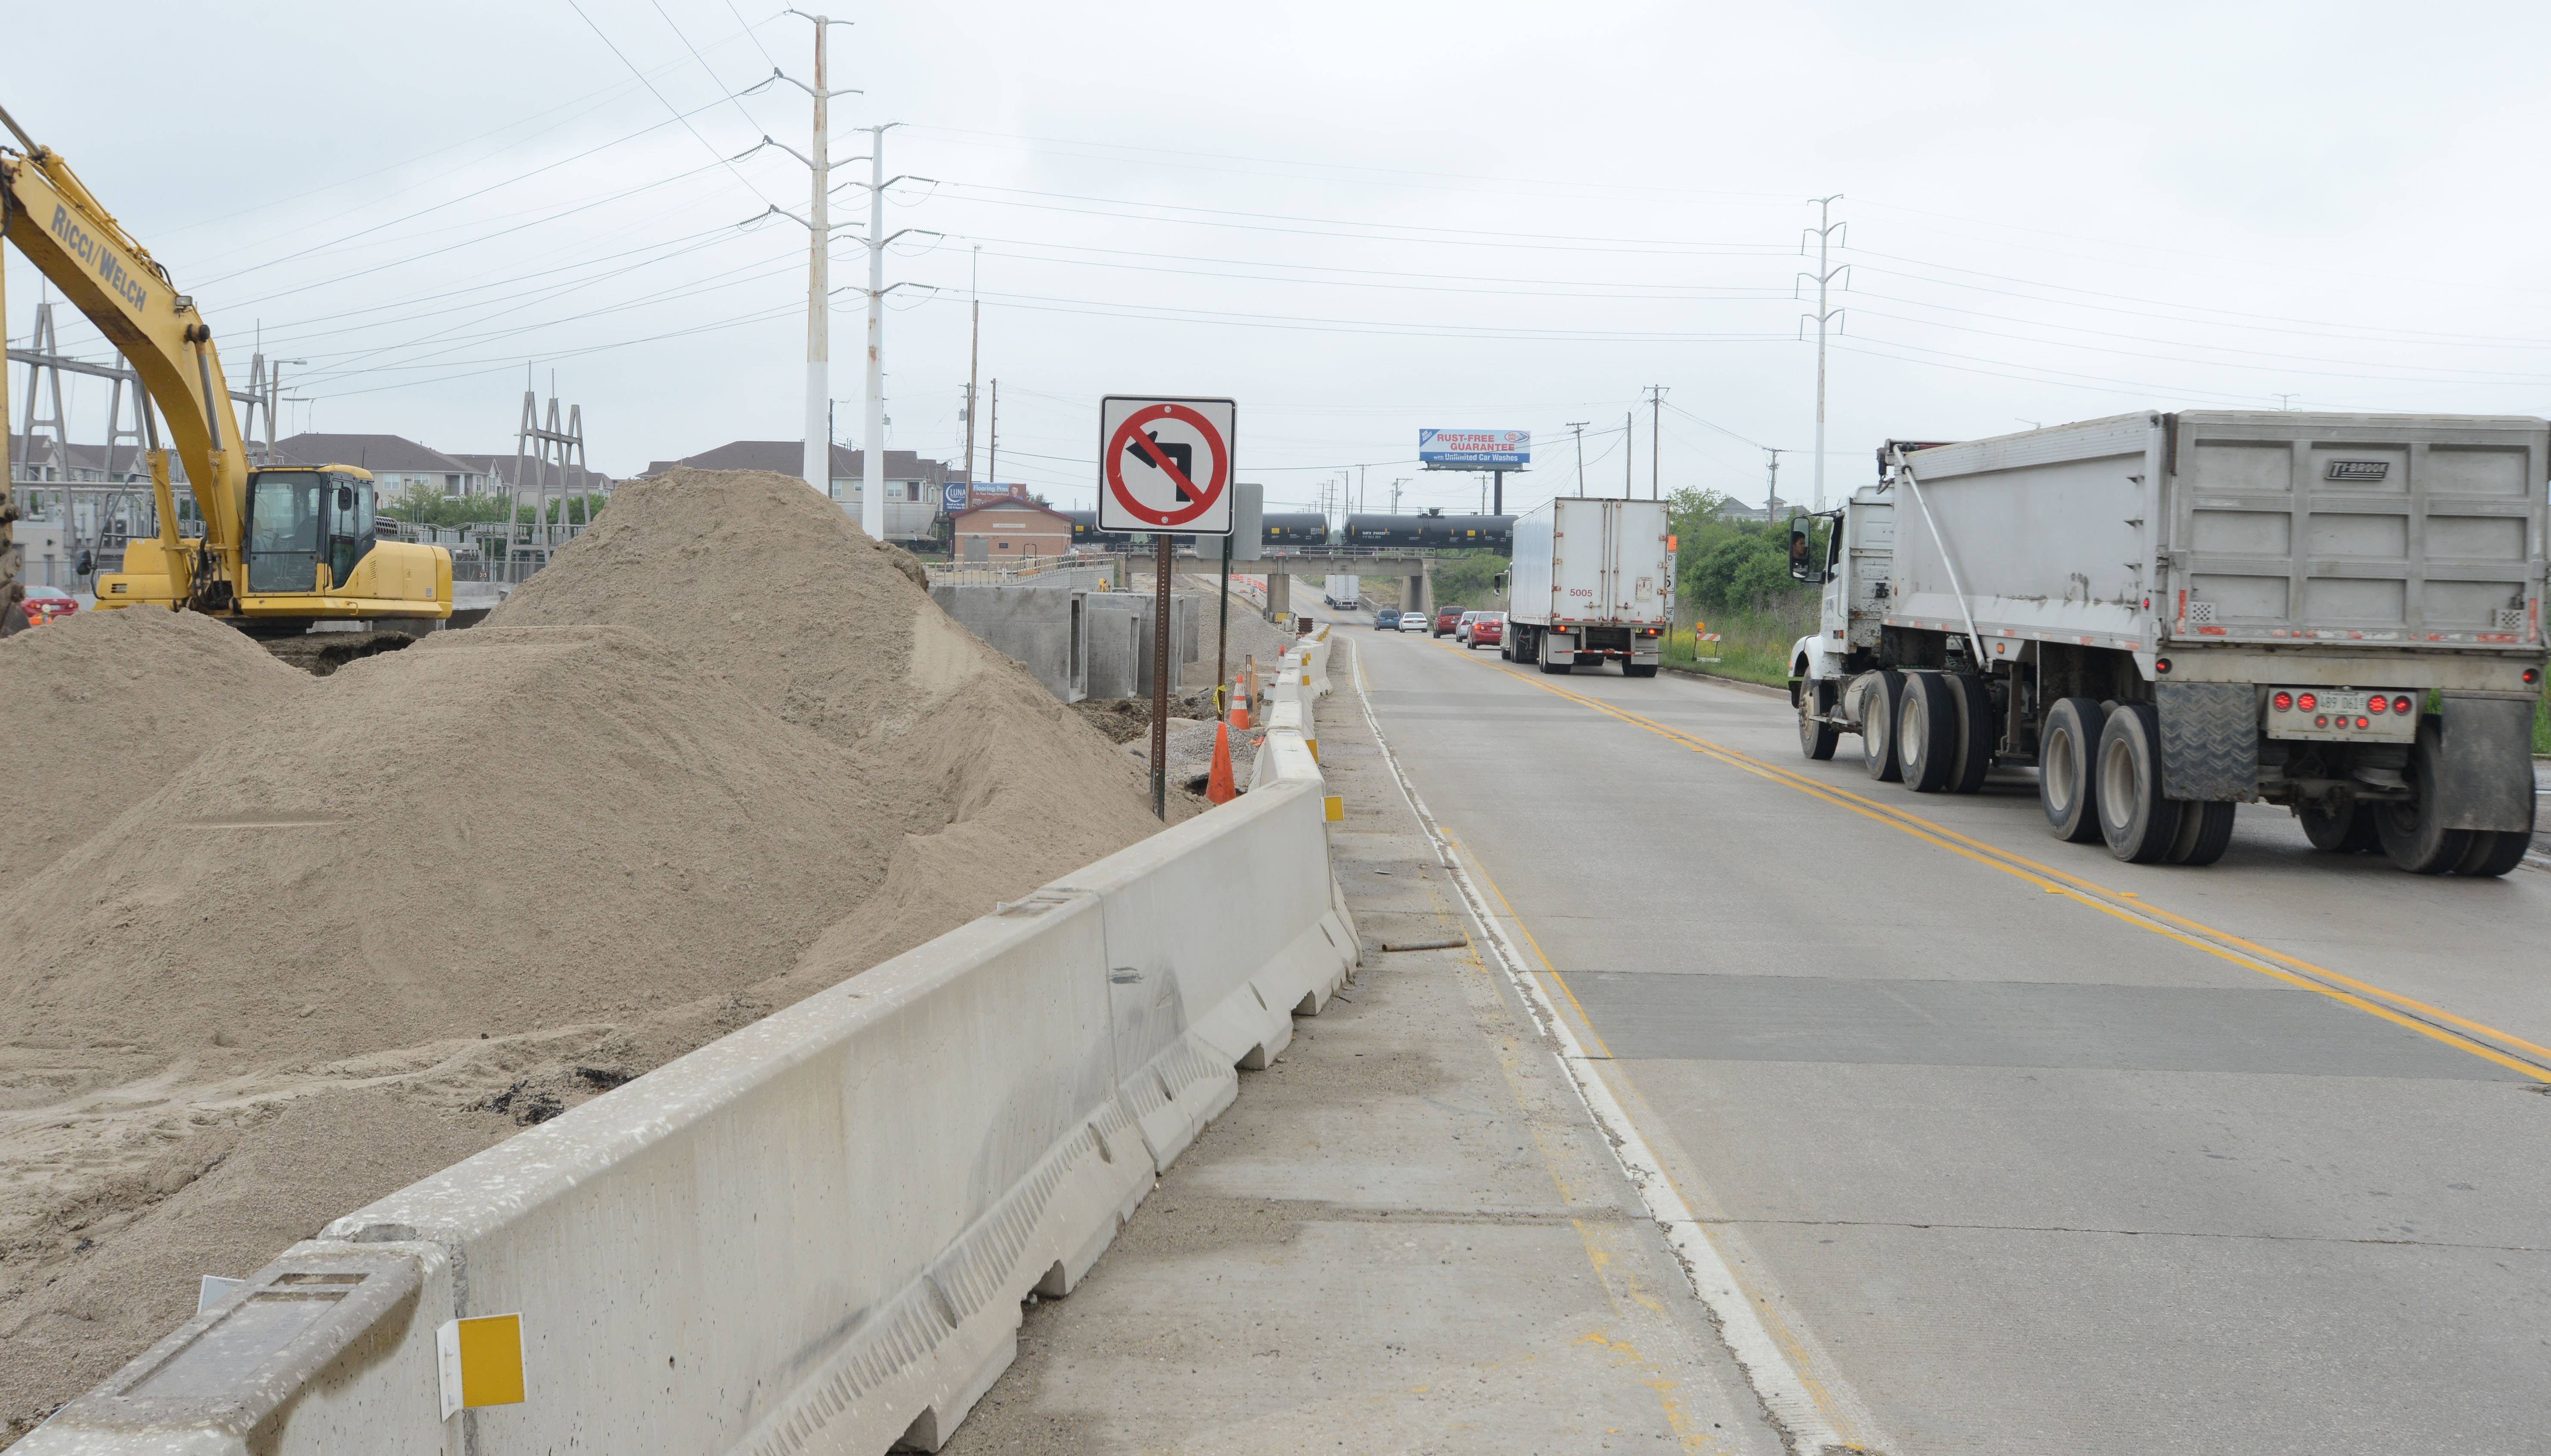 Crews will be installing a box culvert near the Burlington Northern Santa Fe Railroad underpass to carry a creek under the road.